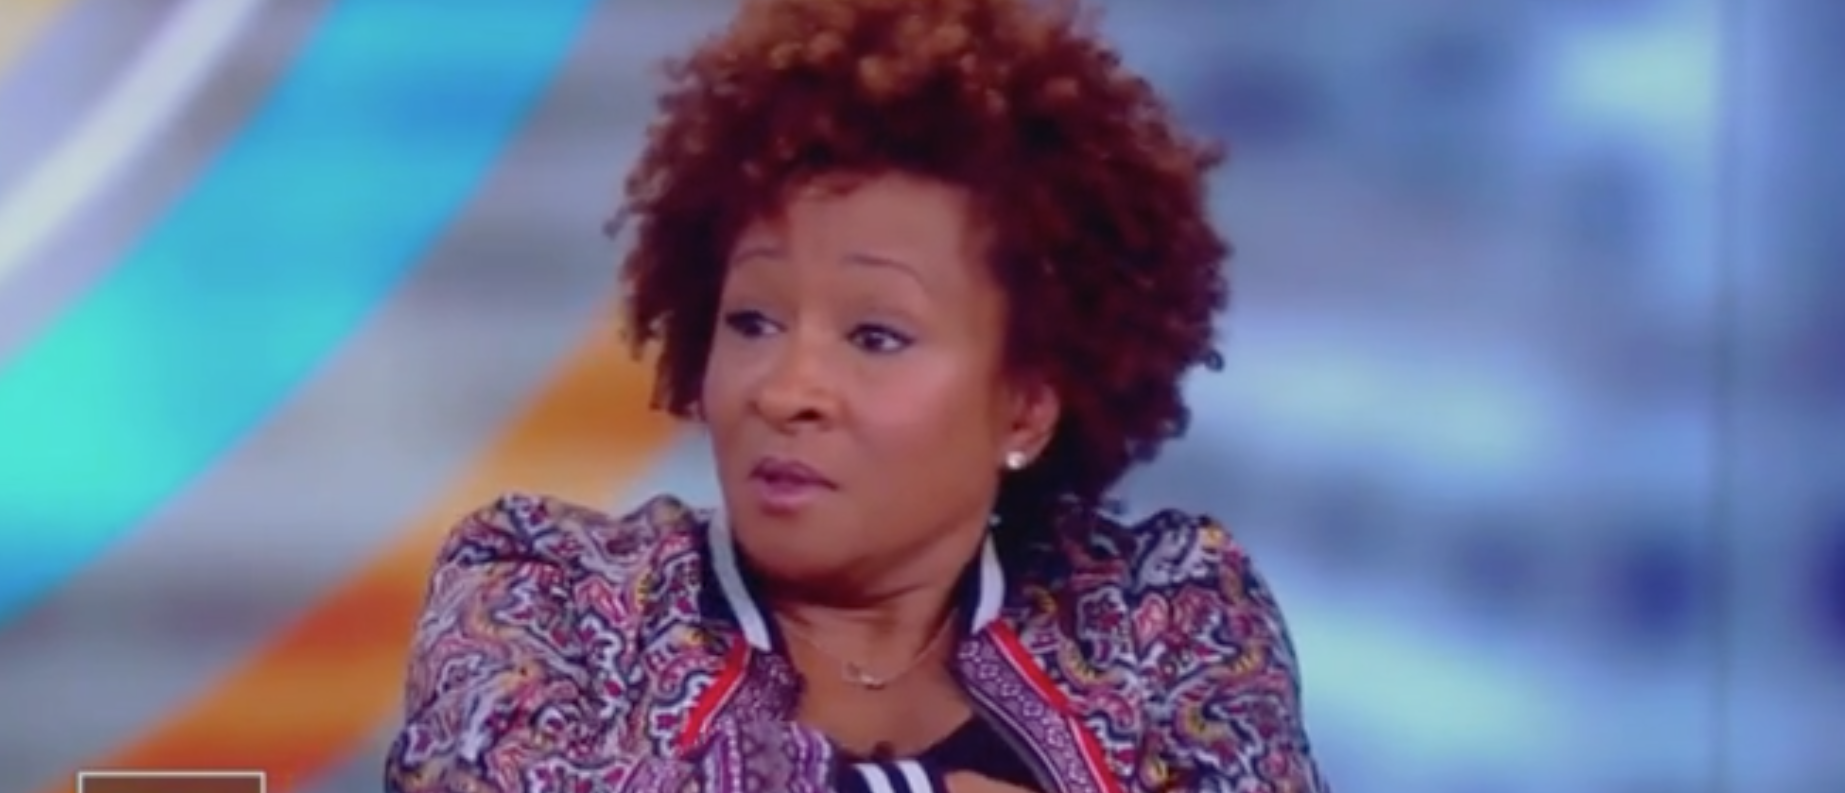 Wanda Sykes Says She'll Only Vote For Biden If He 'Gets A Boyfriend'